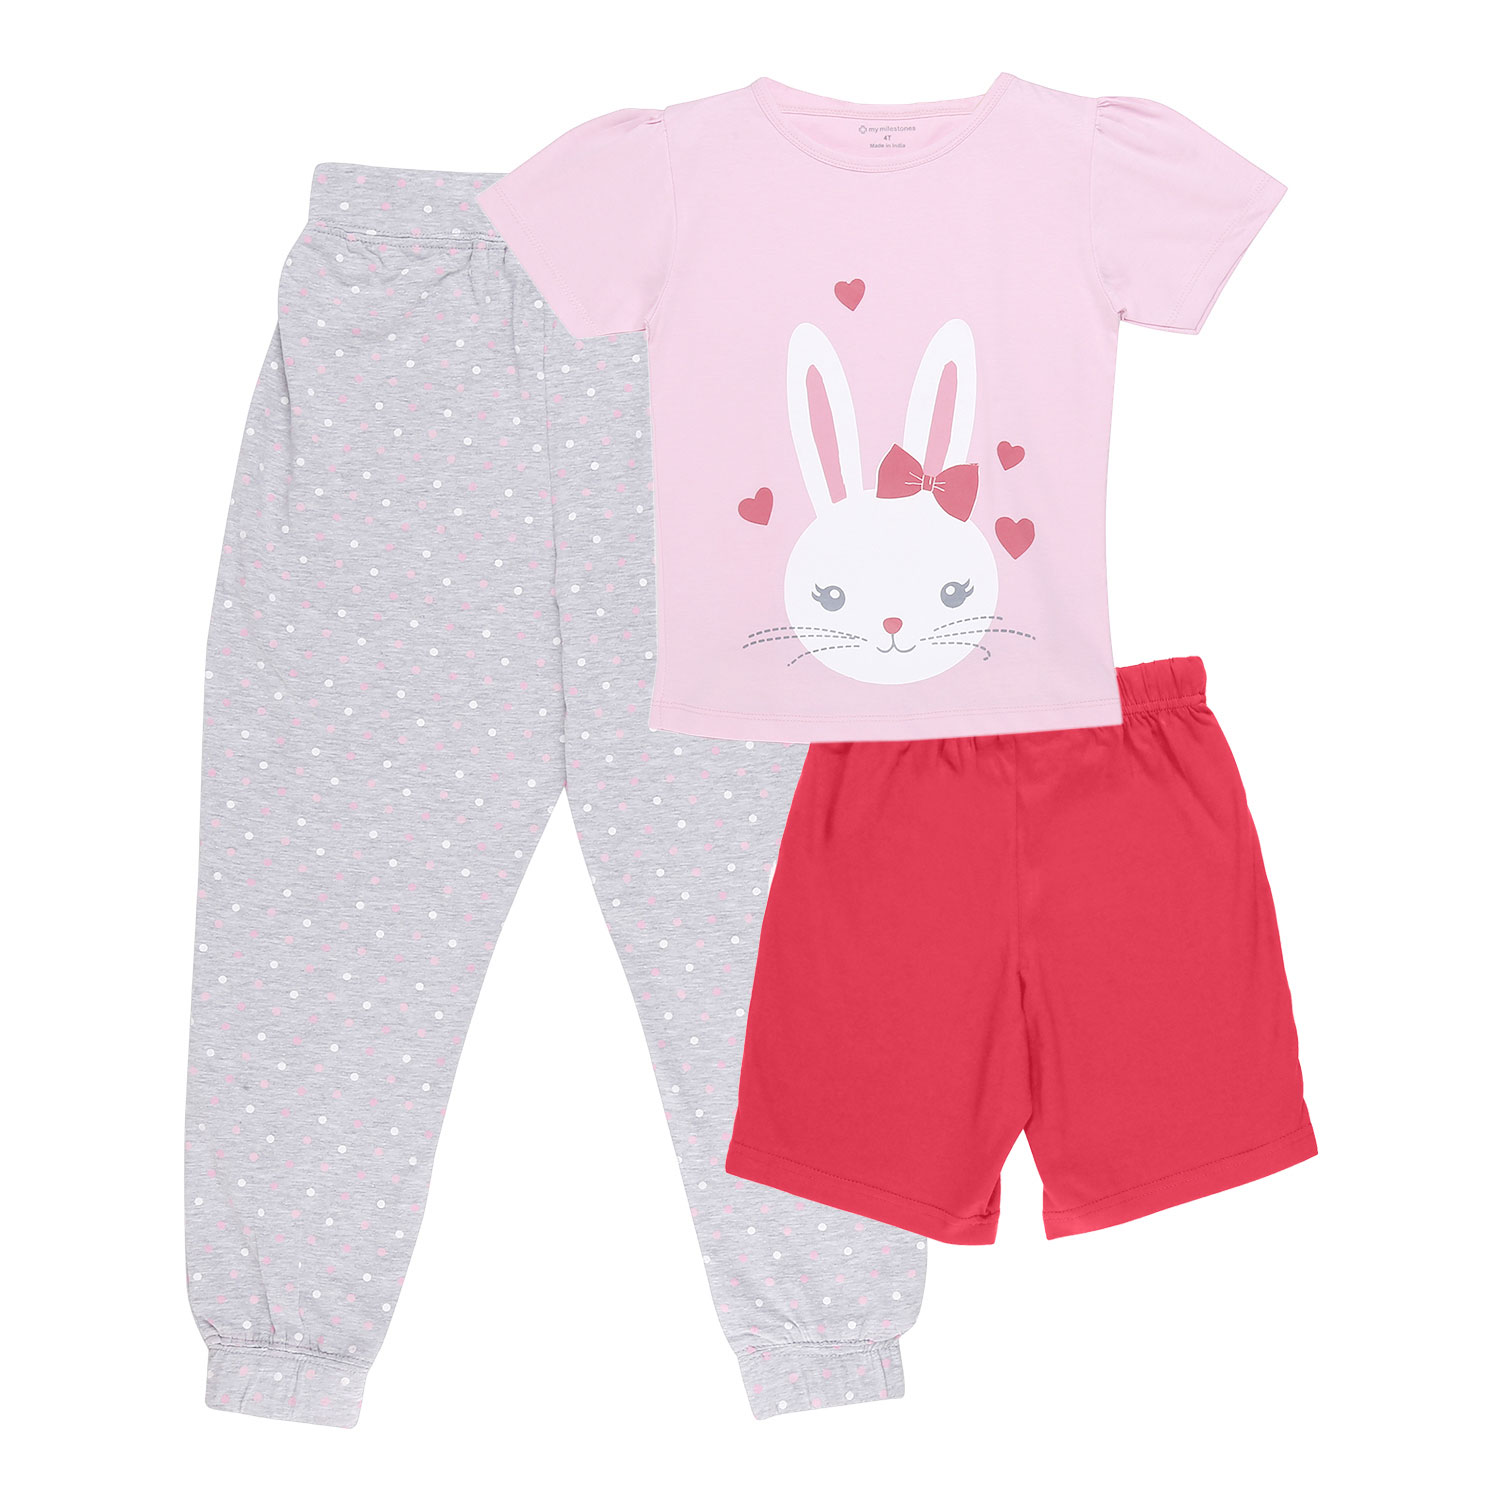 My Milestones Girls 3pcs Lounge Set - Bunny Pink